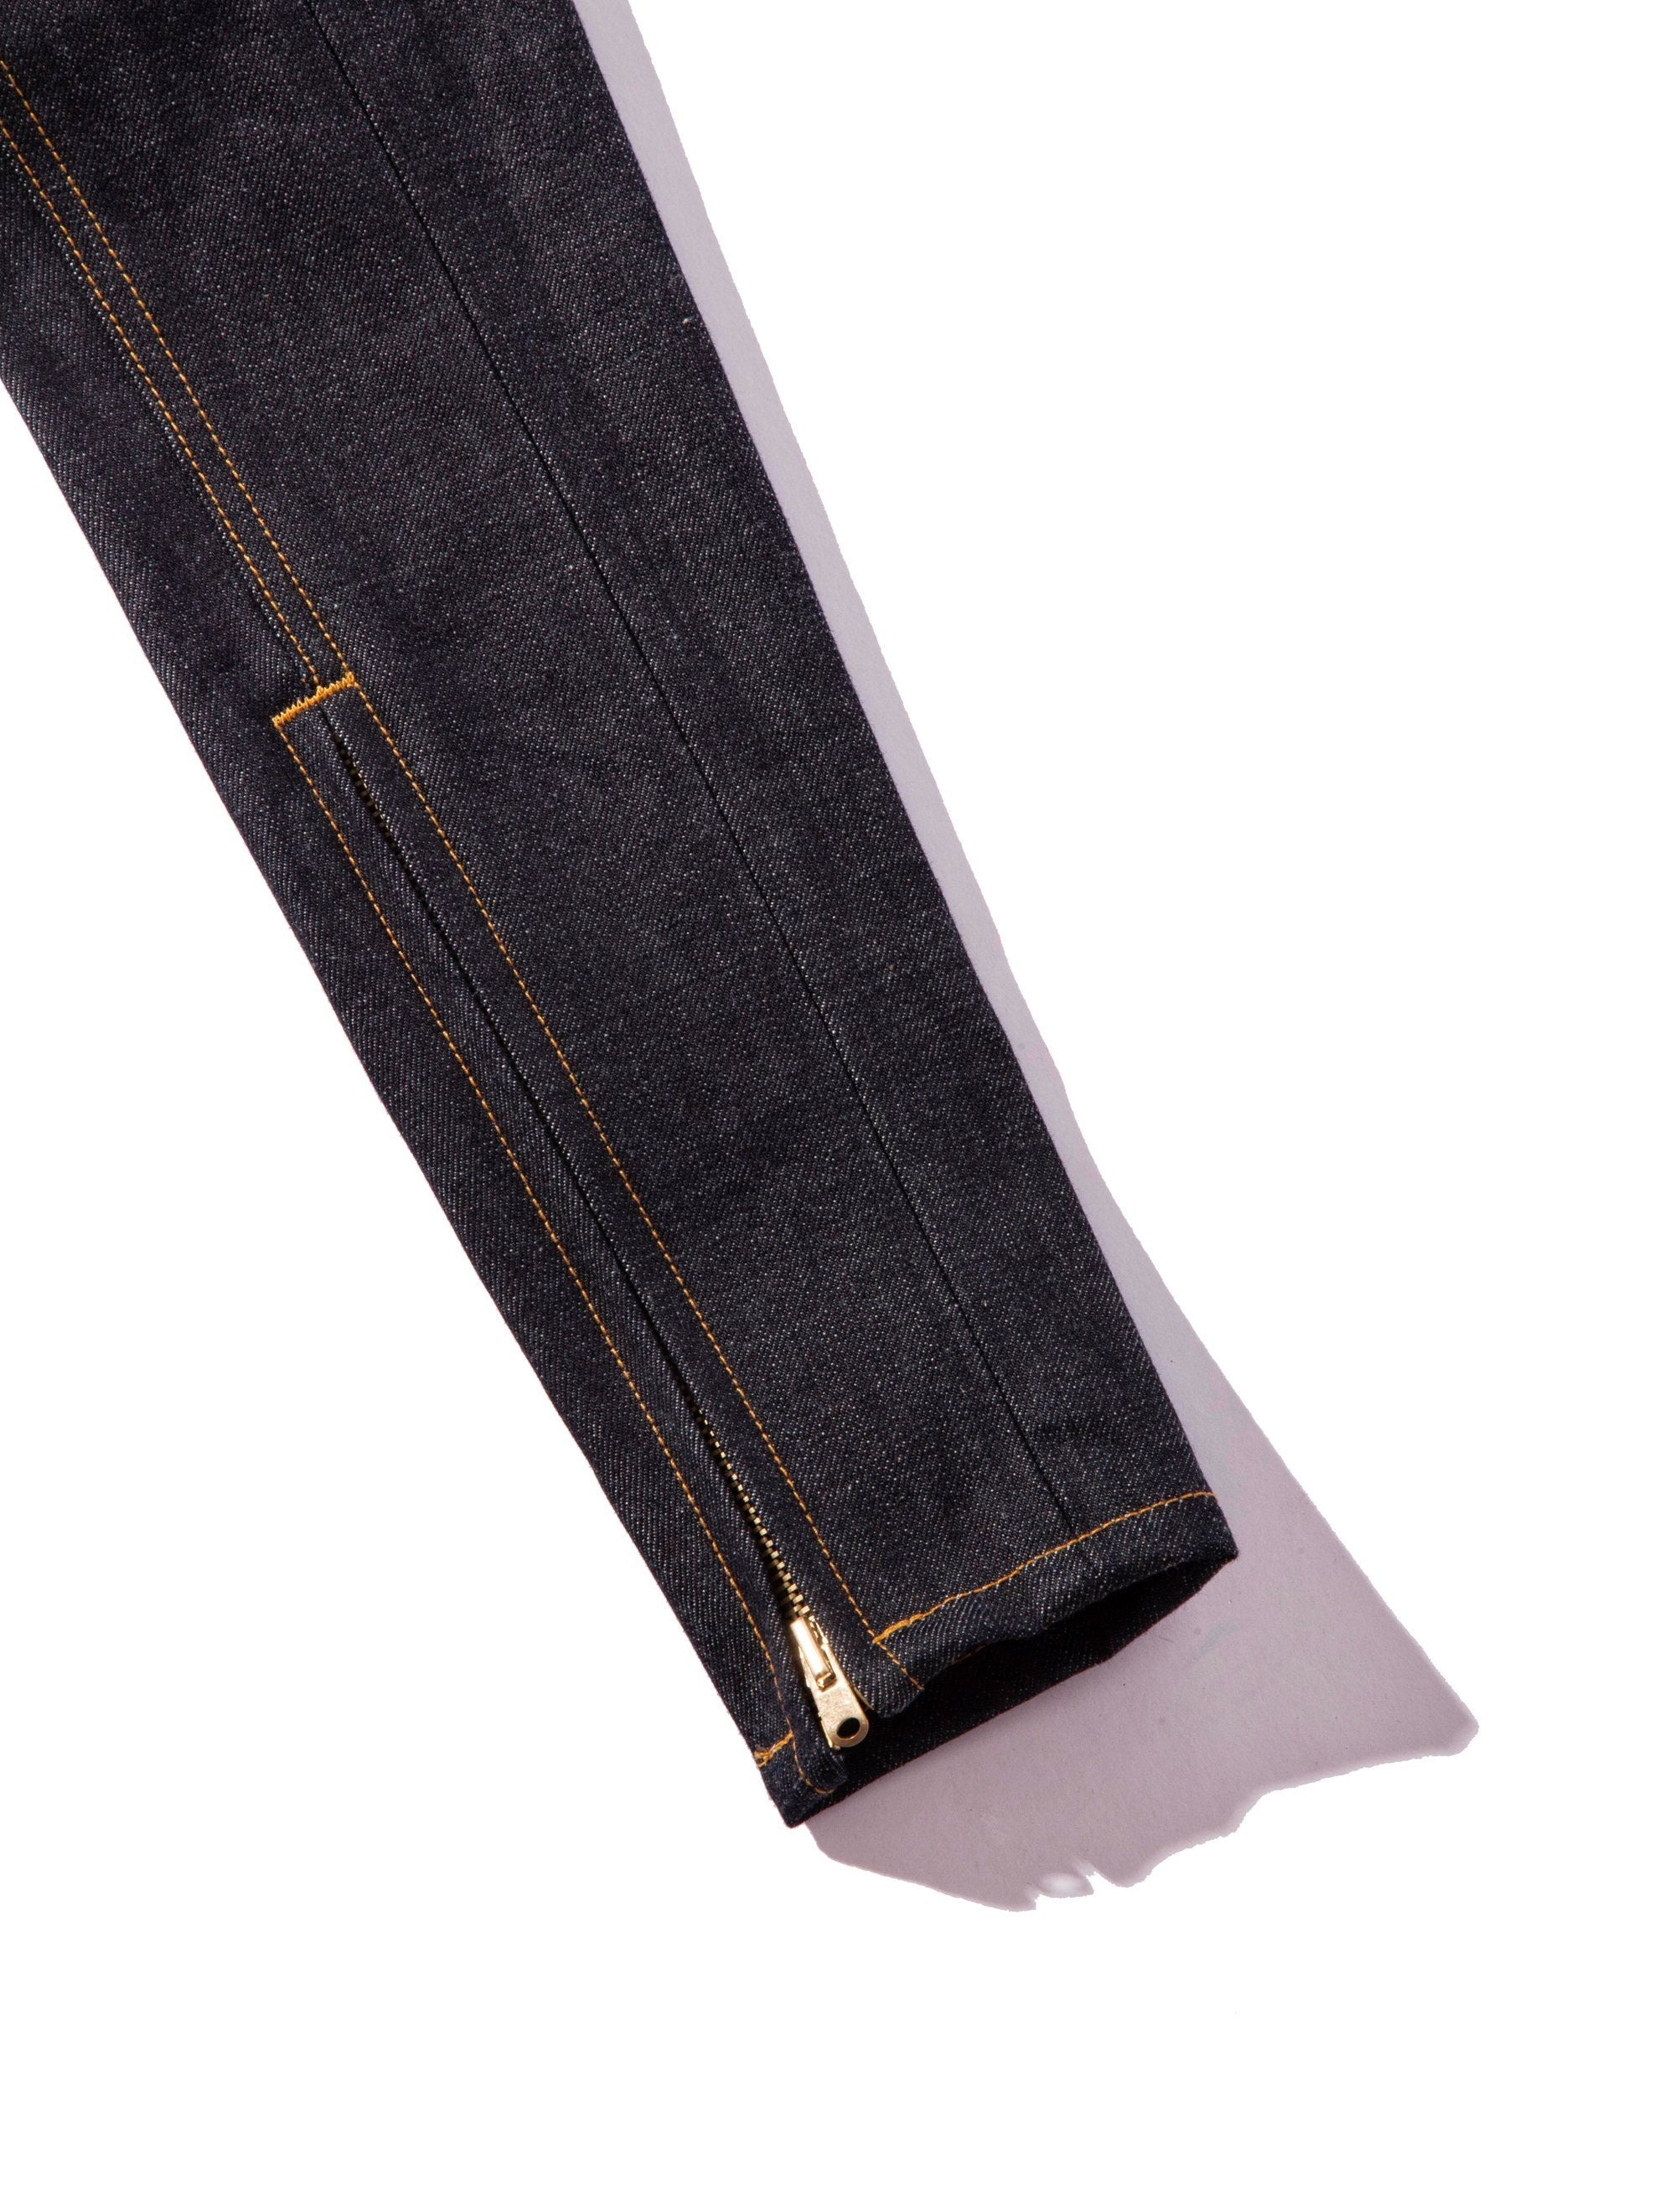 Raw Indigo Selvedge Paneled Denim Jean 10